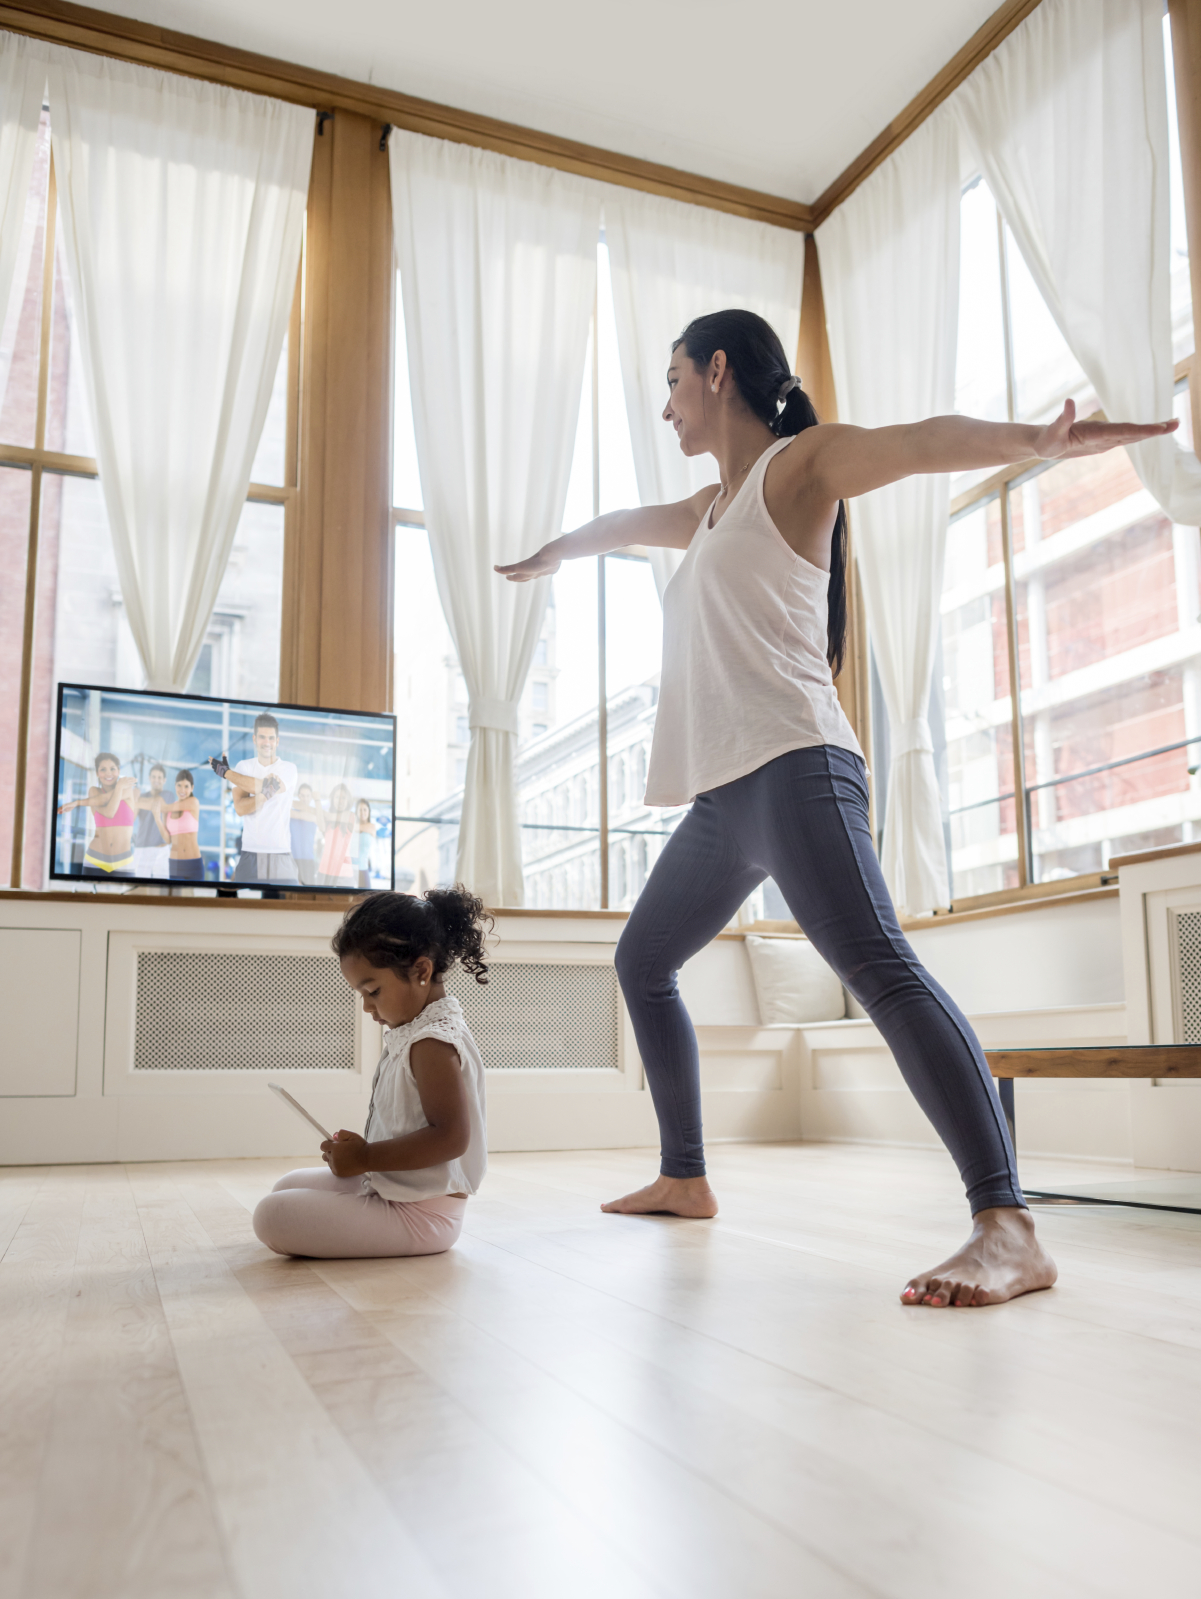 Think about where you want your TV and keep the floor open for mat work image: andresr